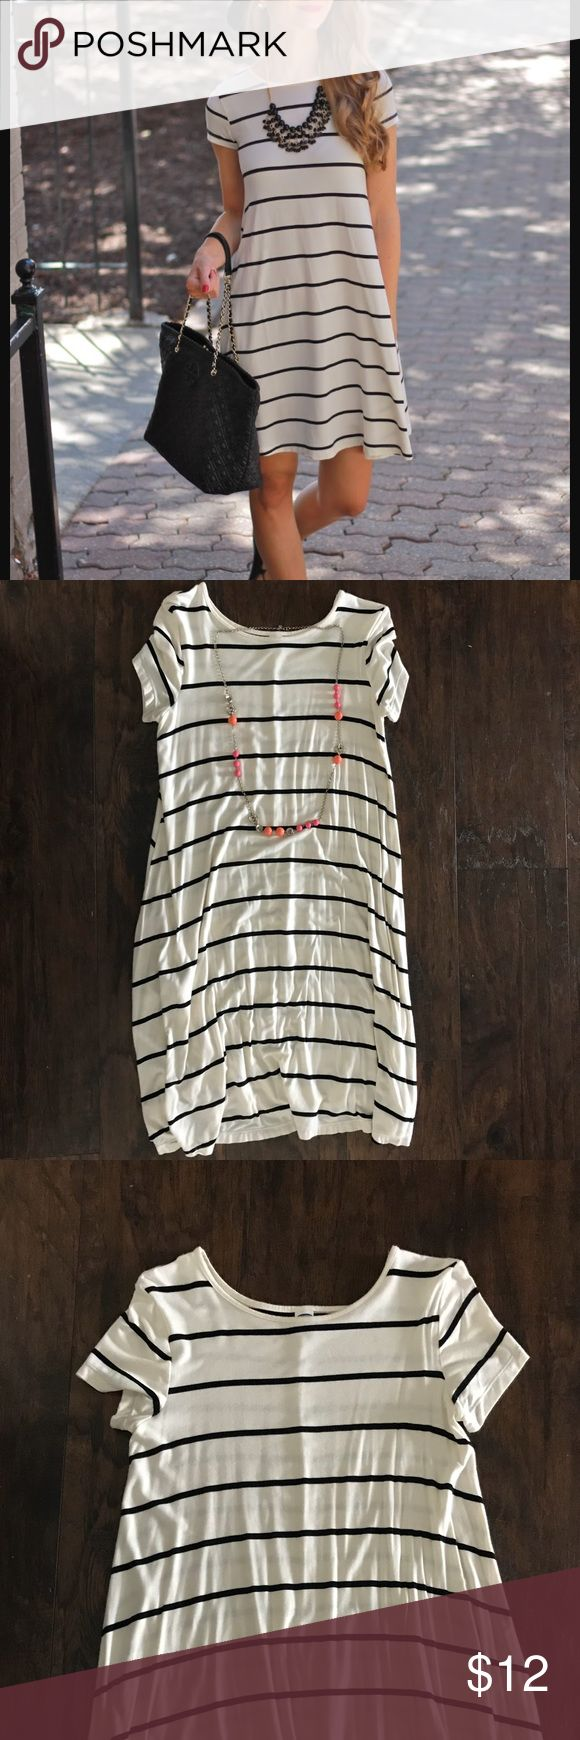 Old Navy Women's Striped Short Sleeve Swing Dress Darling Old Navy Swing Dress. Can dress up or down, depending on accessories. Necklace not included. Old Navy Dresses